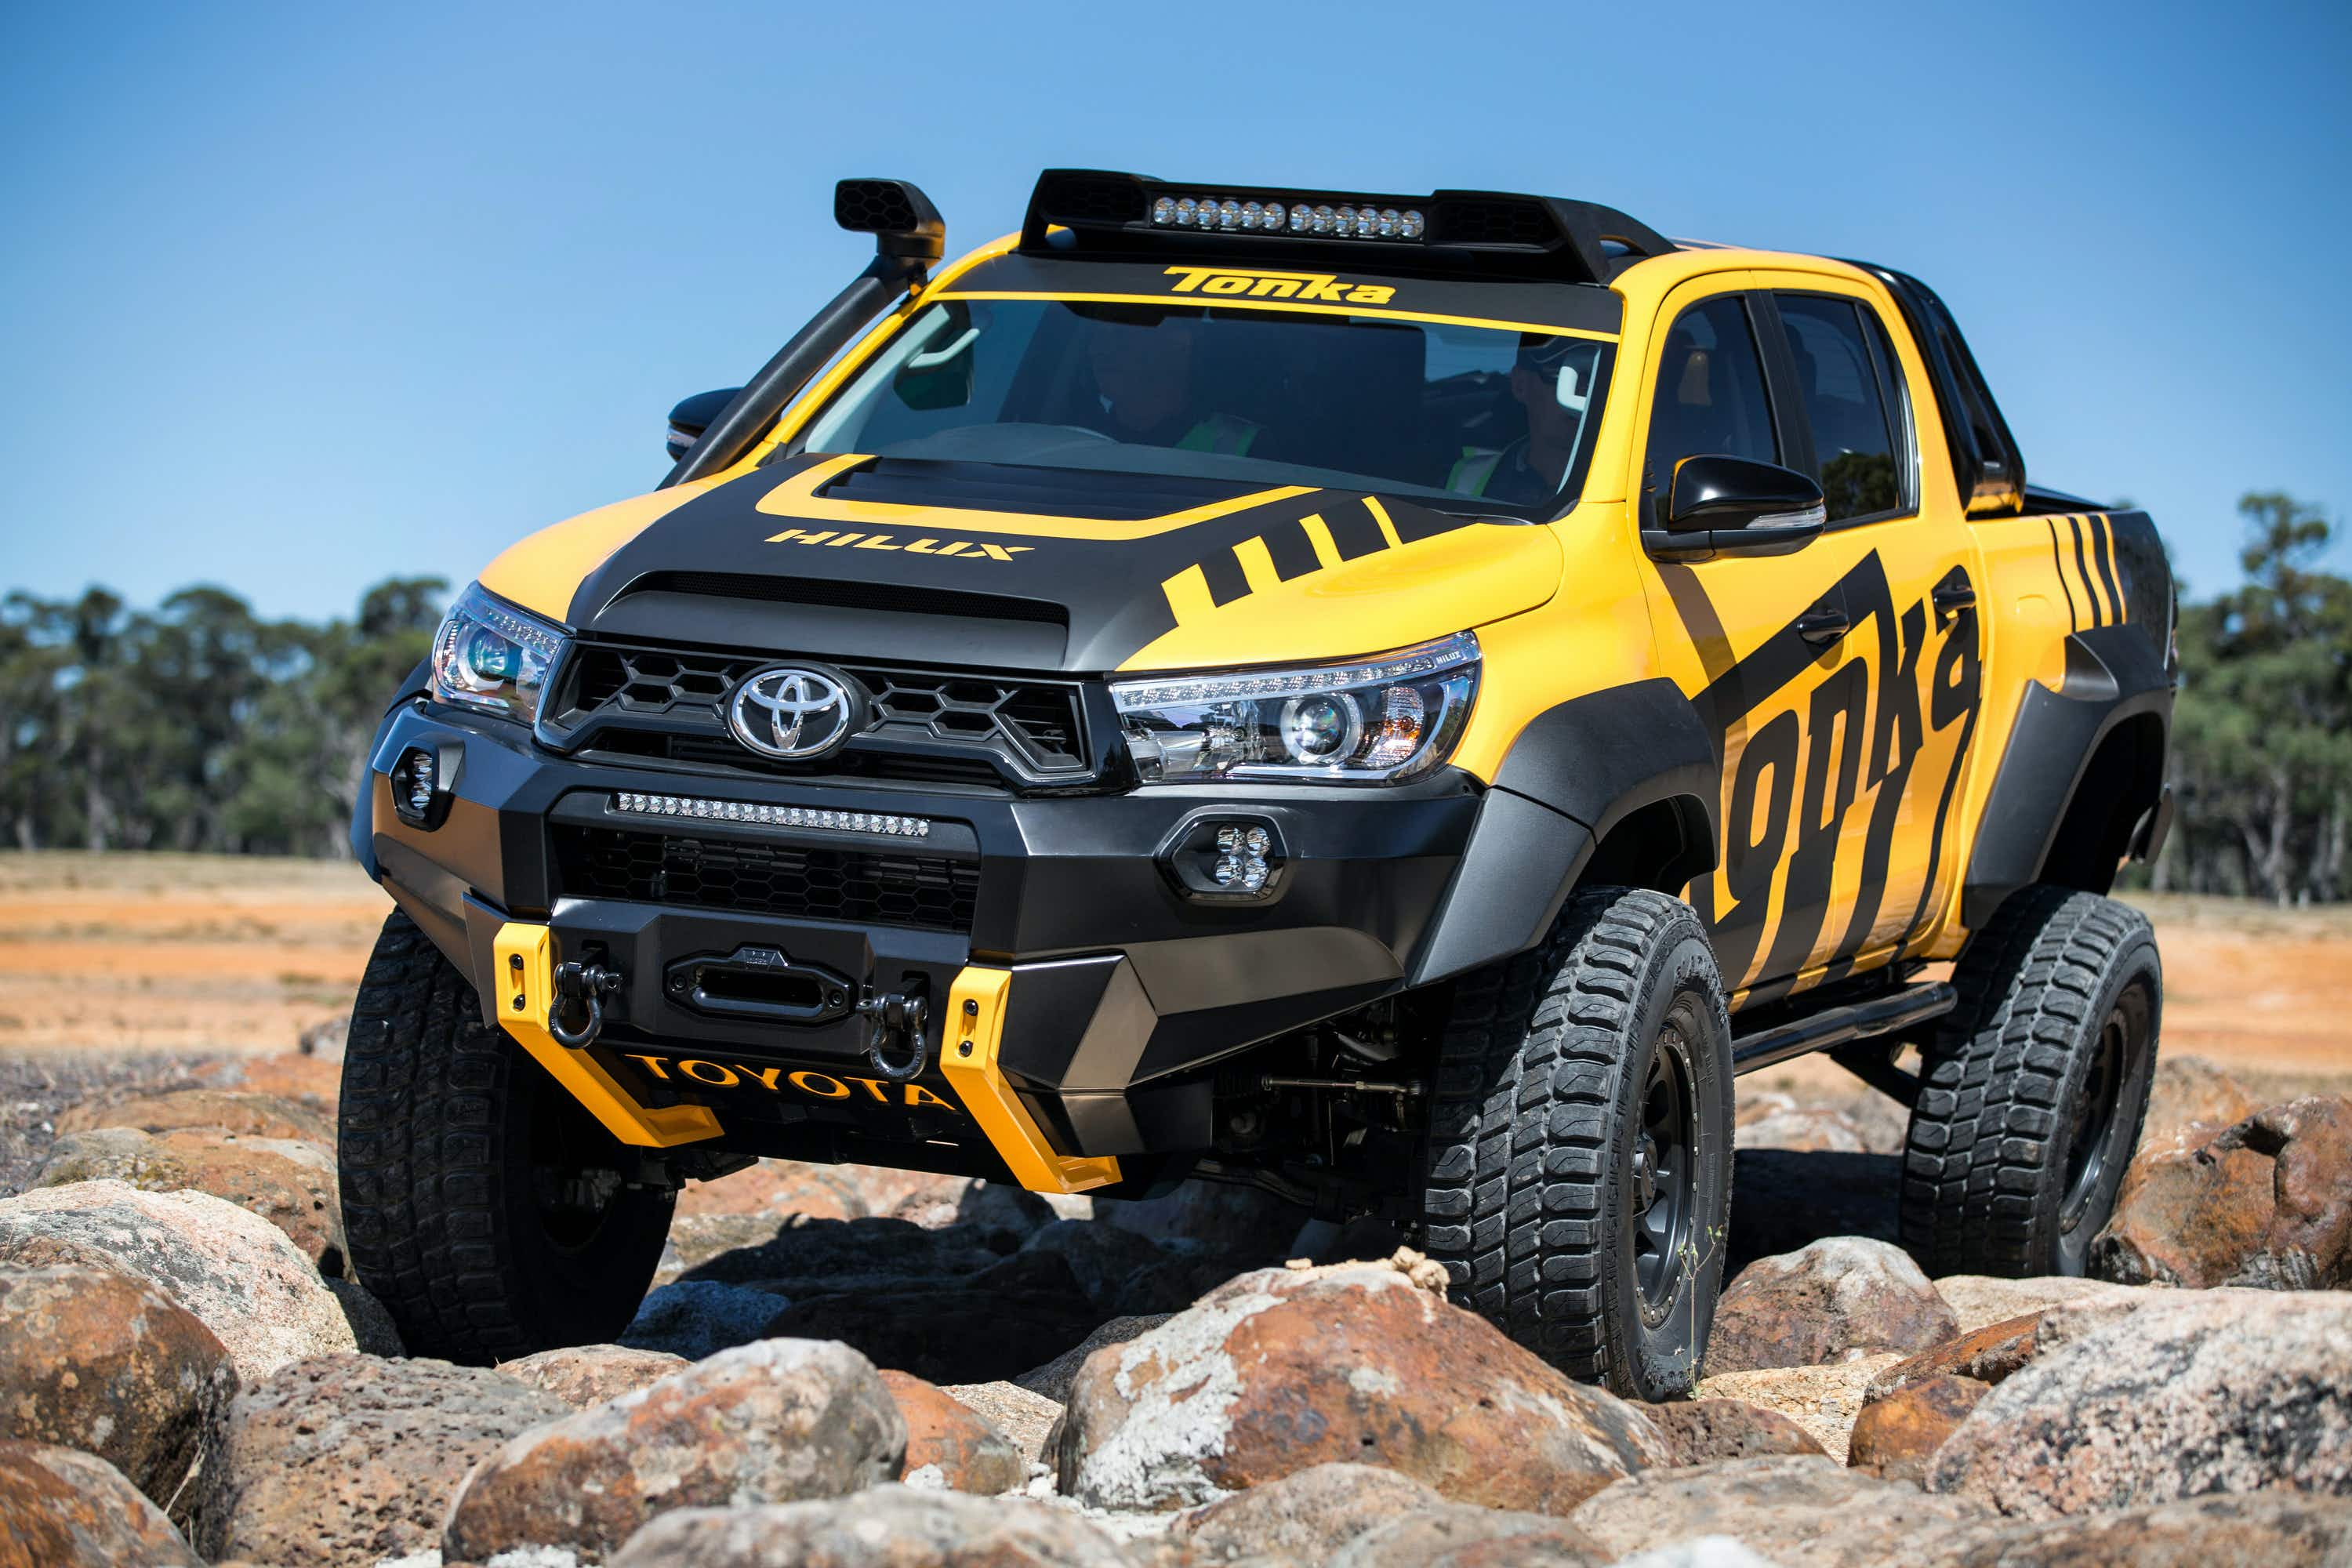 Australia's favourite car gets a makeover for extreme driving